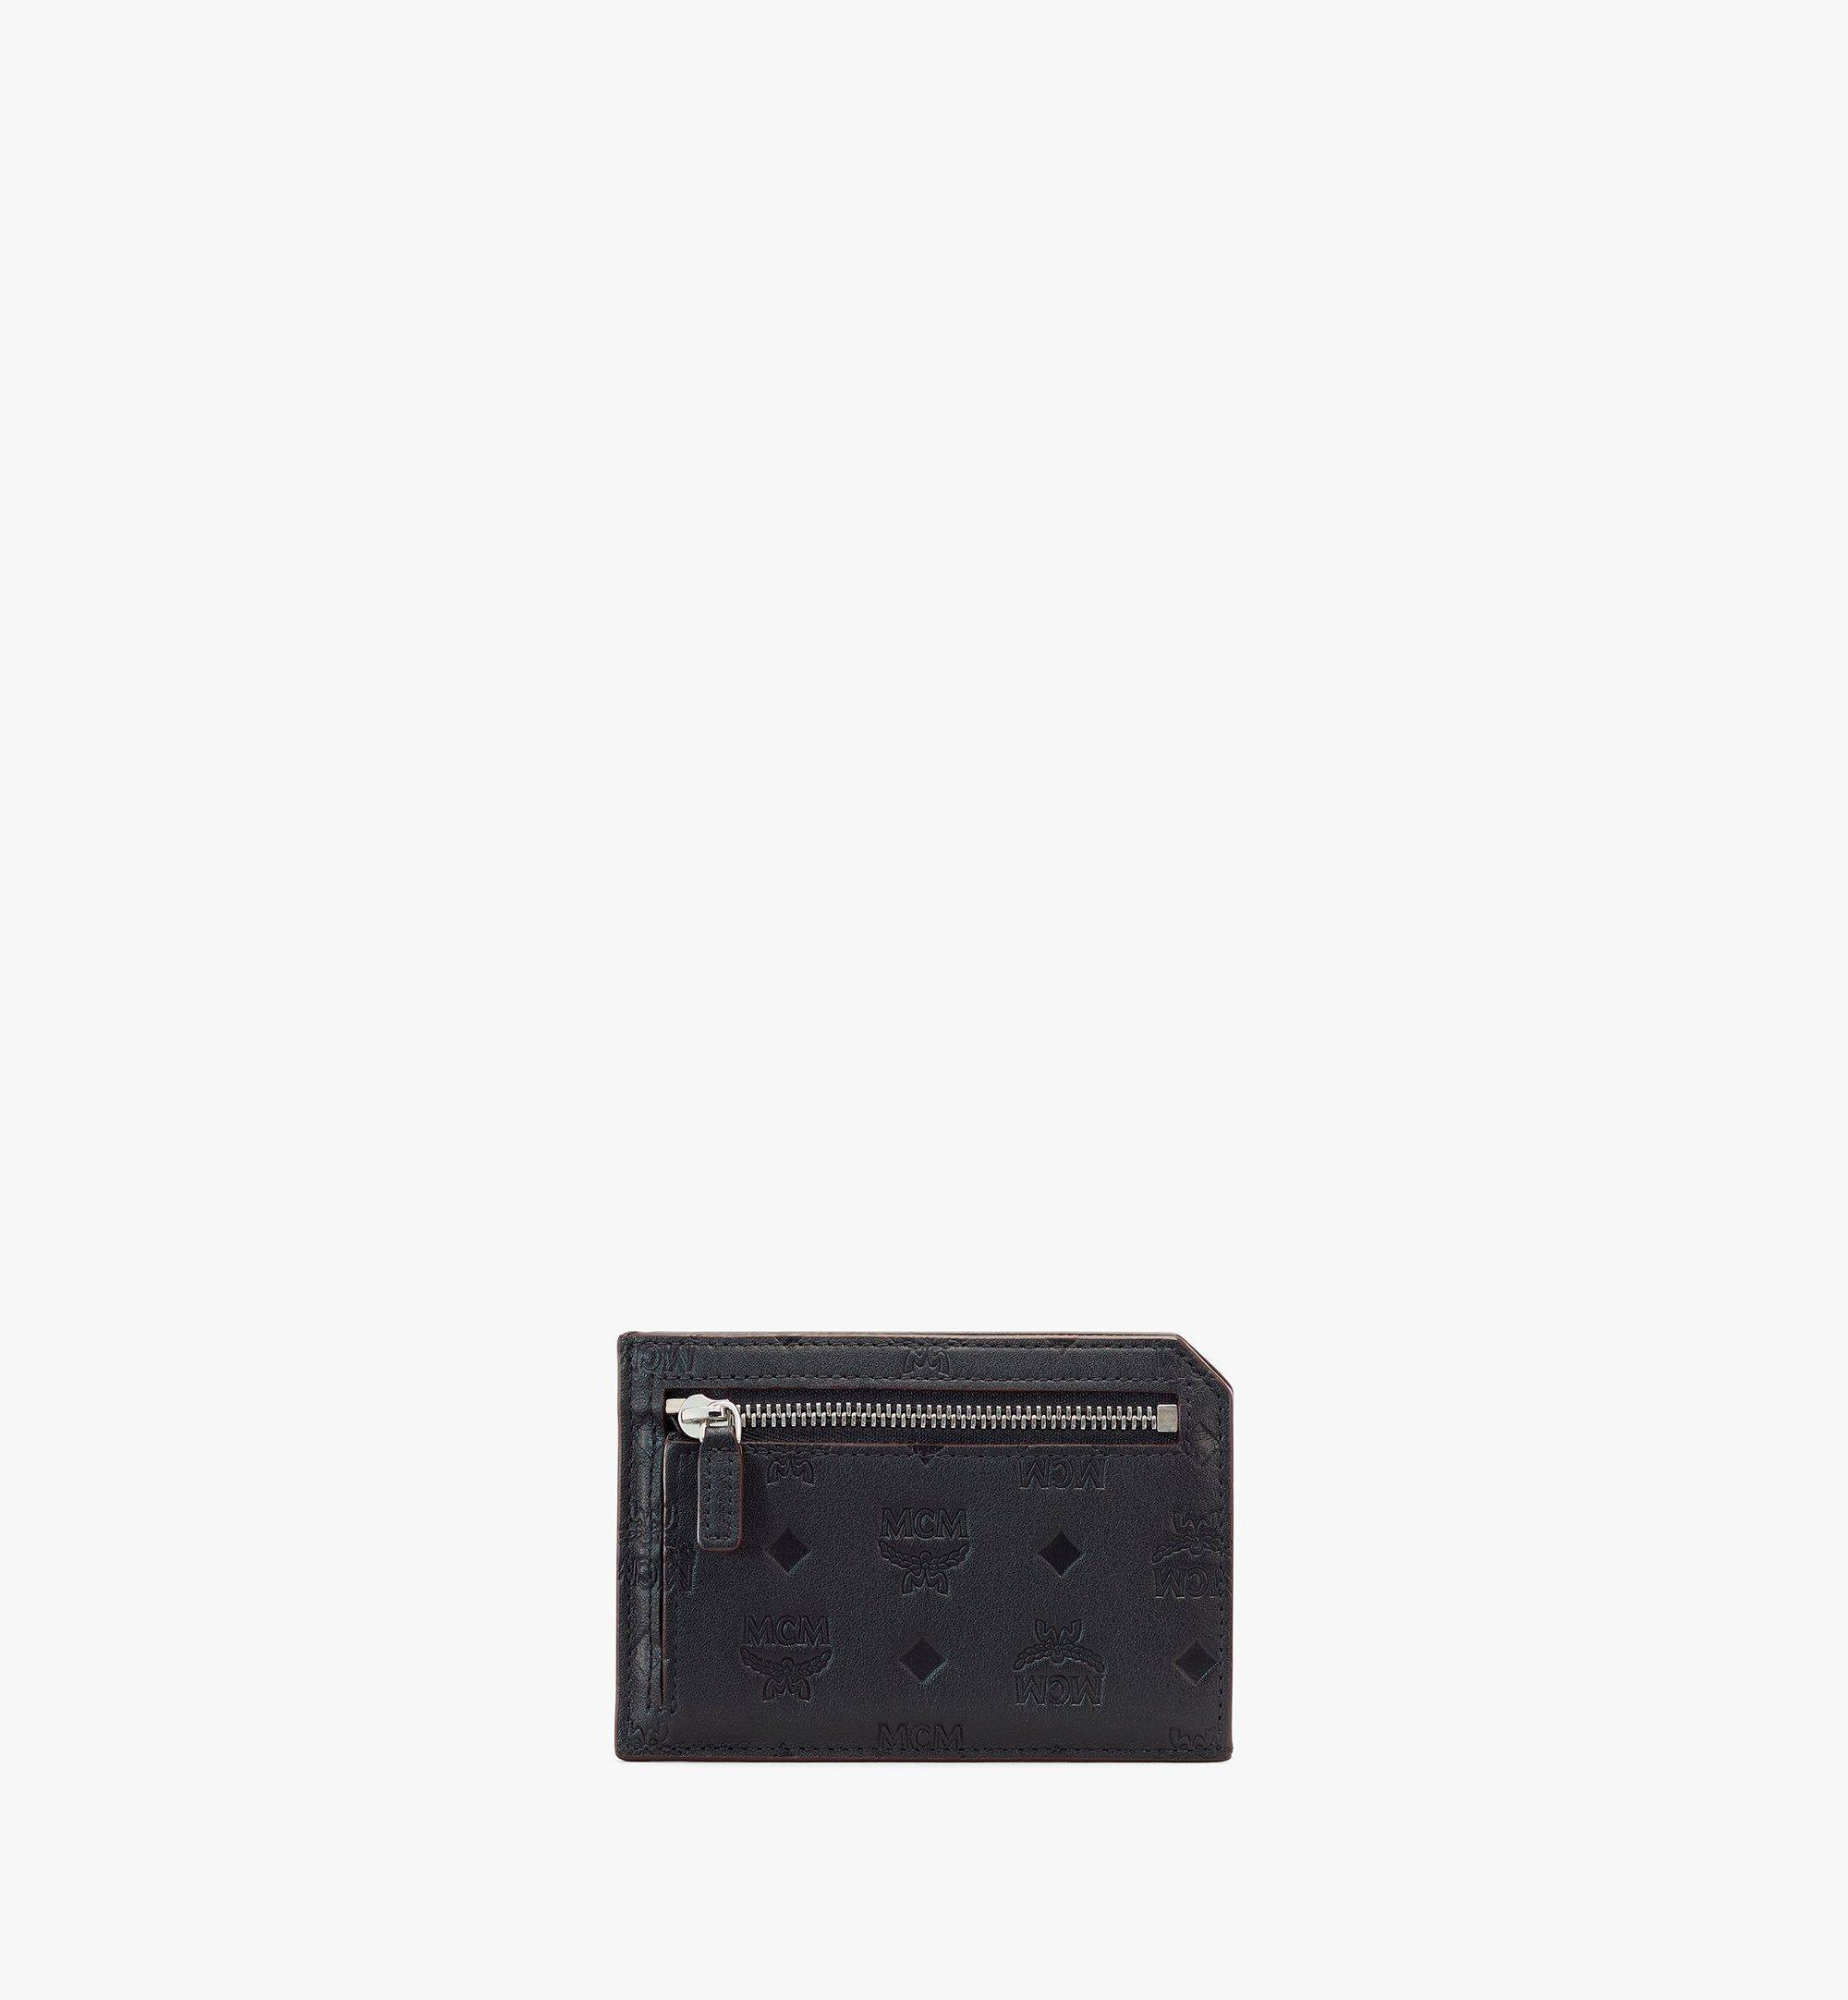 MCM Klara Multifunction Card Holder In Monogram Leather  - BLACK - Size: MNI